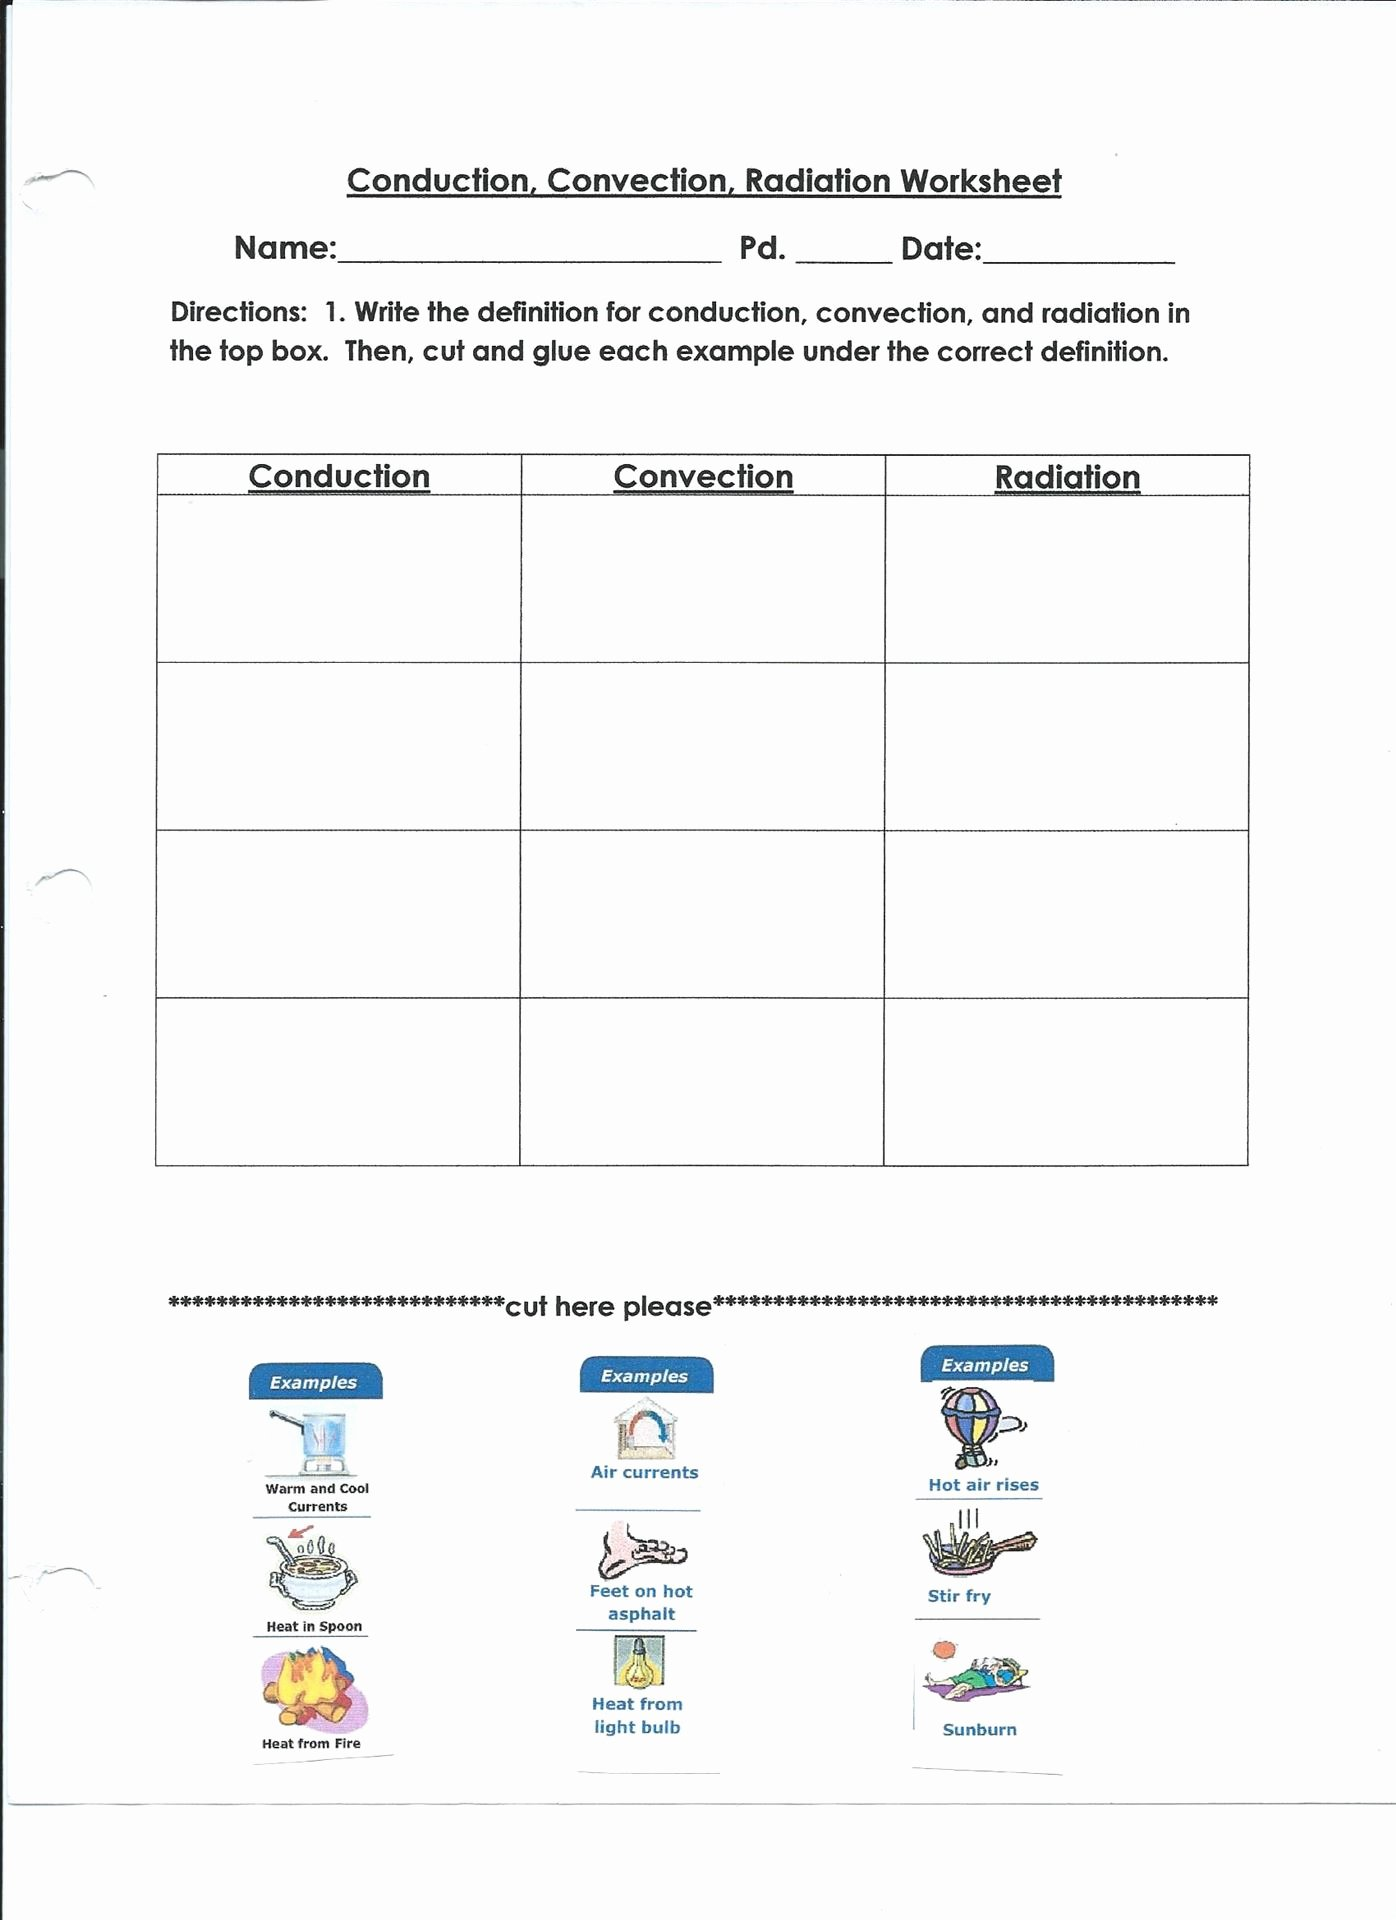 Conduction Convection and Radiation Worksheet Lovely Convection Radiation Conduction Worksheet Inspiracao